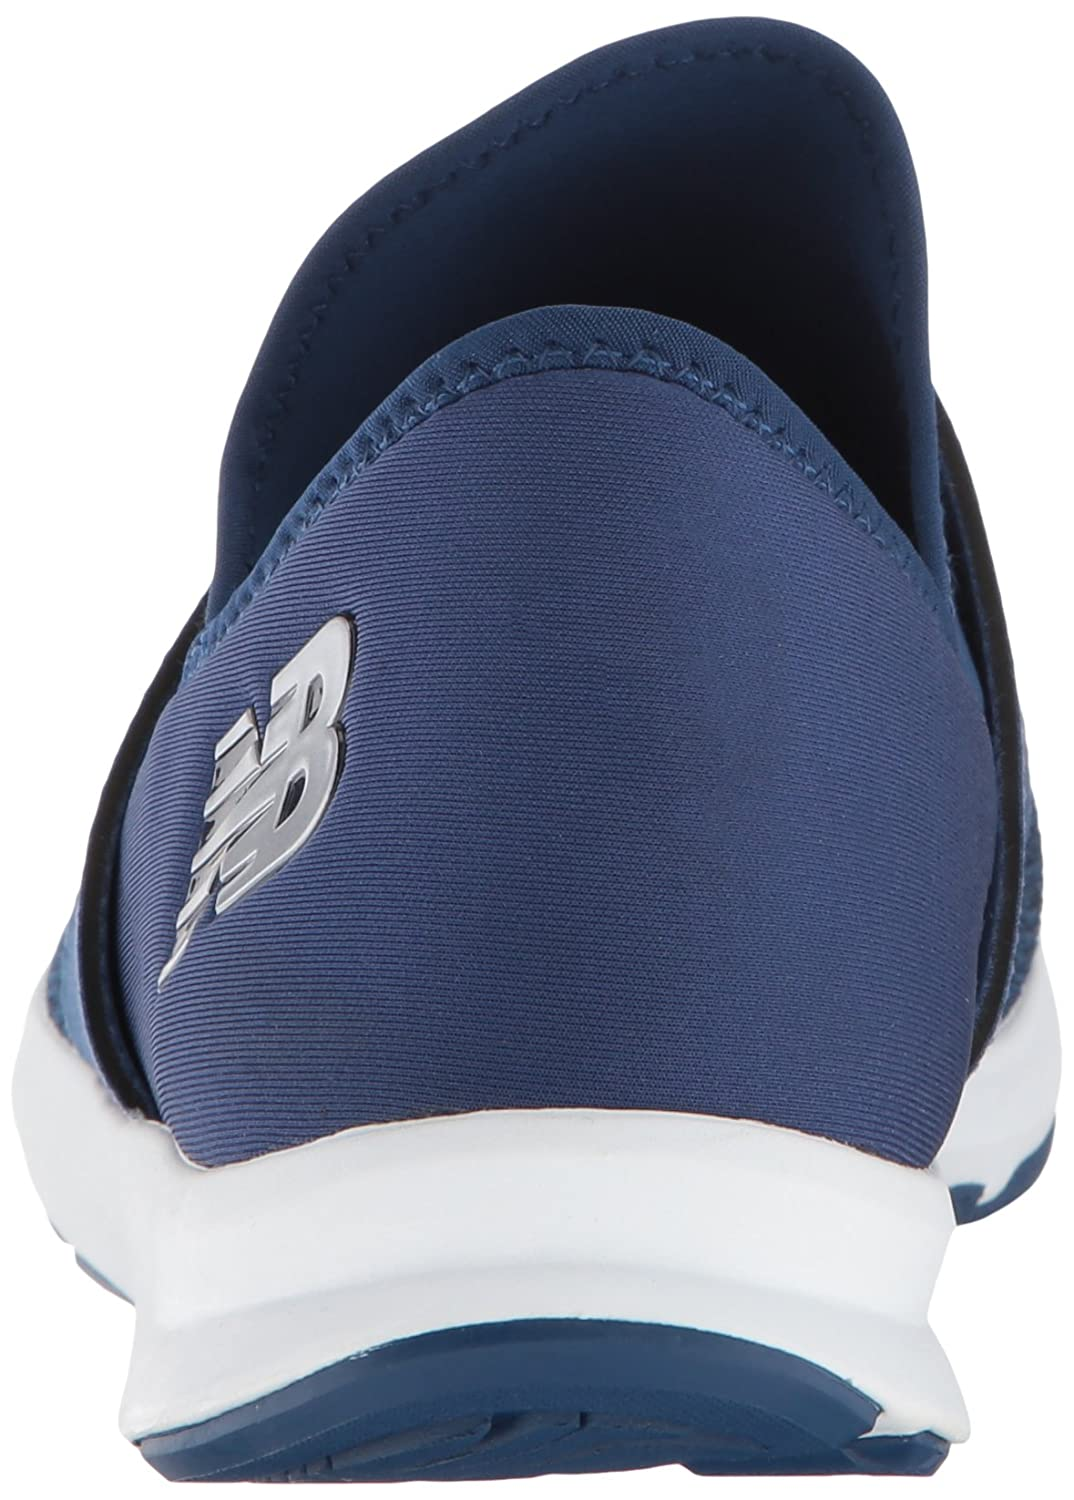 New Balance Women's SPK V1 FuelCore Cross Trainer B075R7N95H 9 D US|Blue